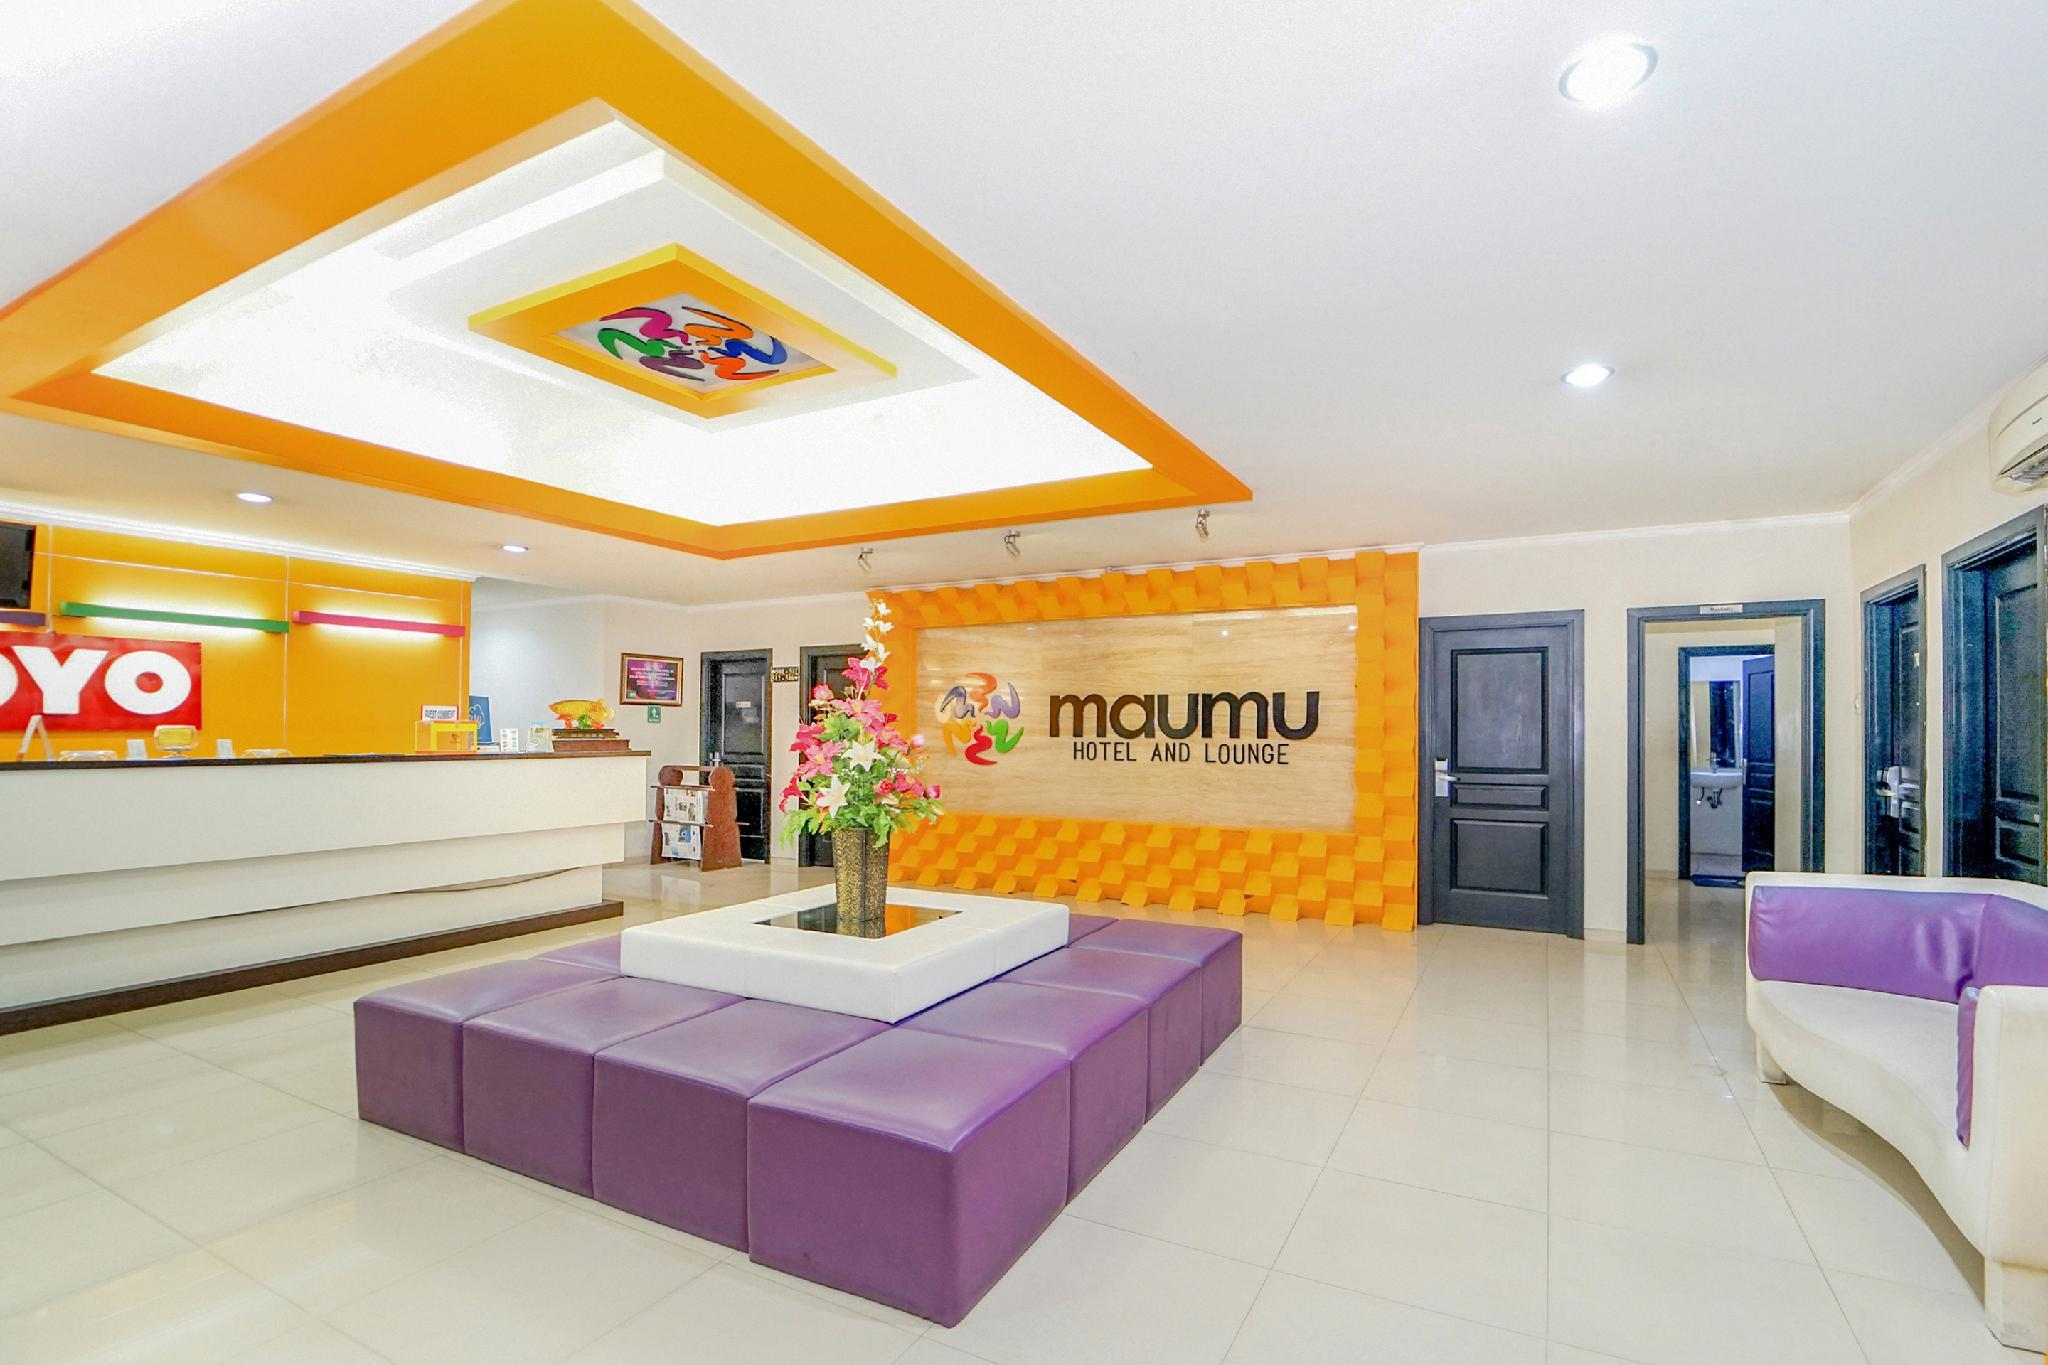 Maumu Hotel And Lounge